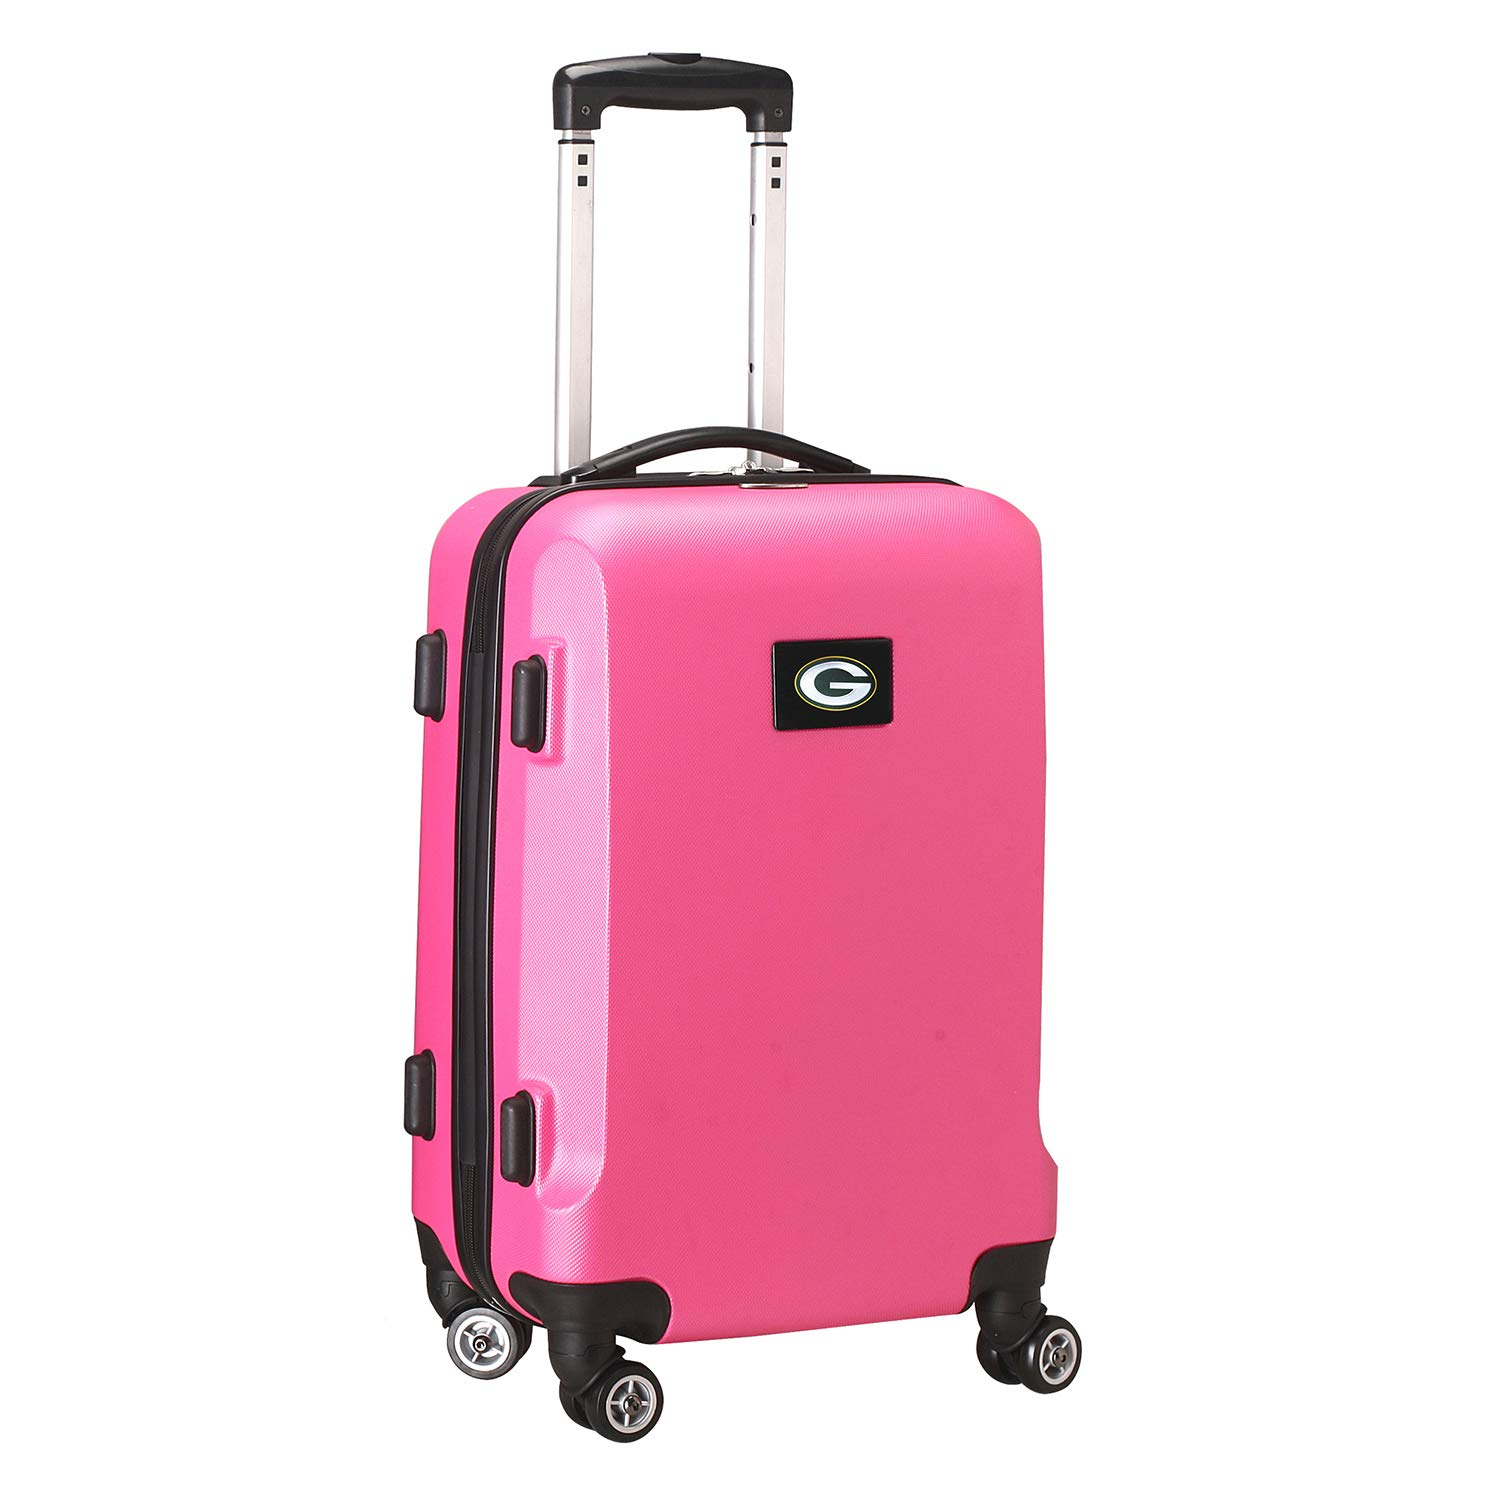 Denco NFL Green Bay Packers Carry-On Hardcase Luggage Spinner, Pink